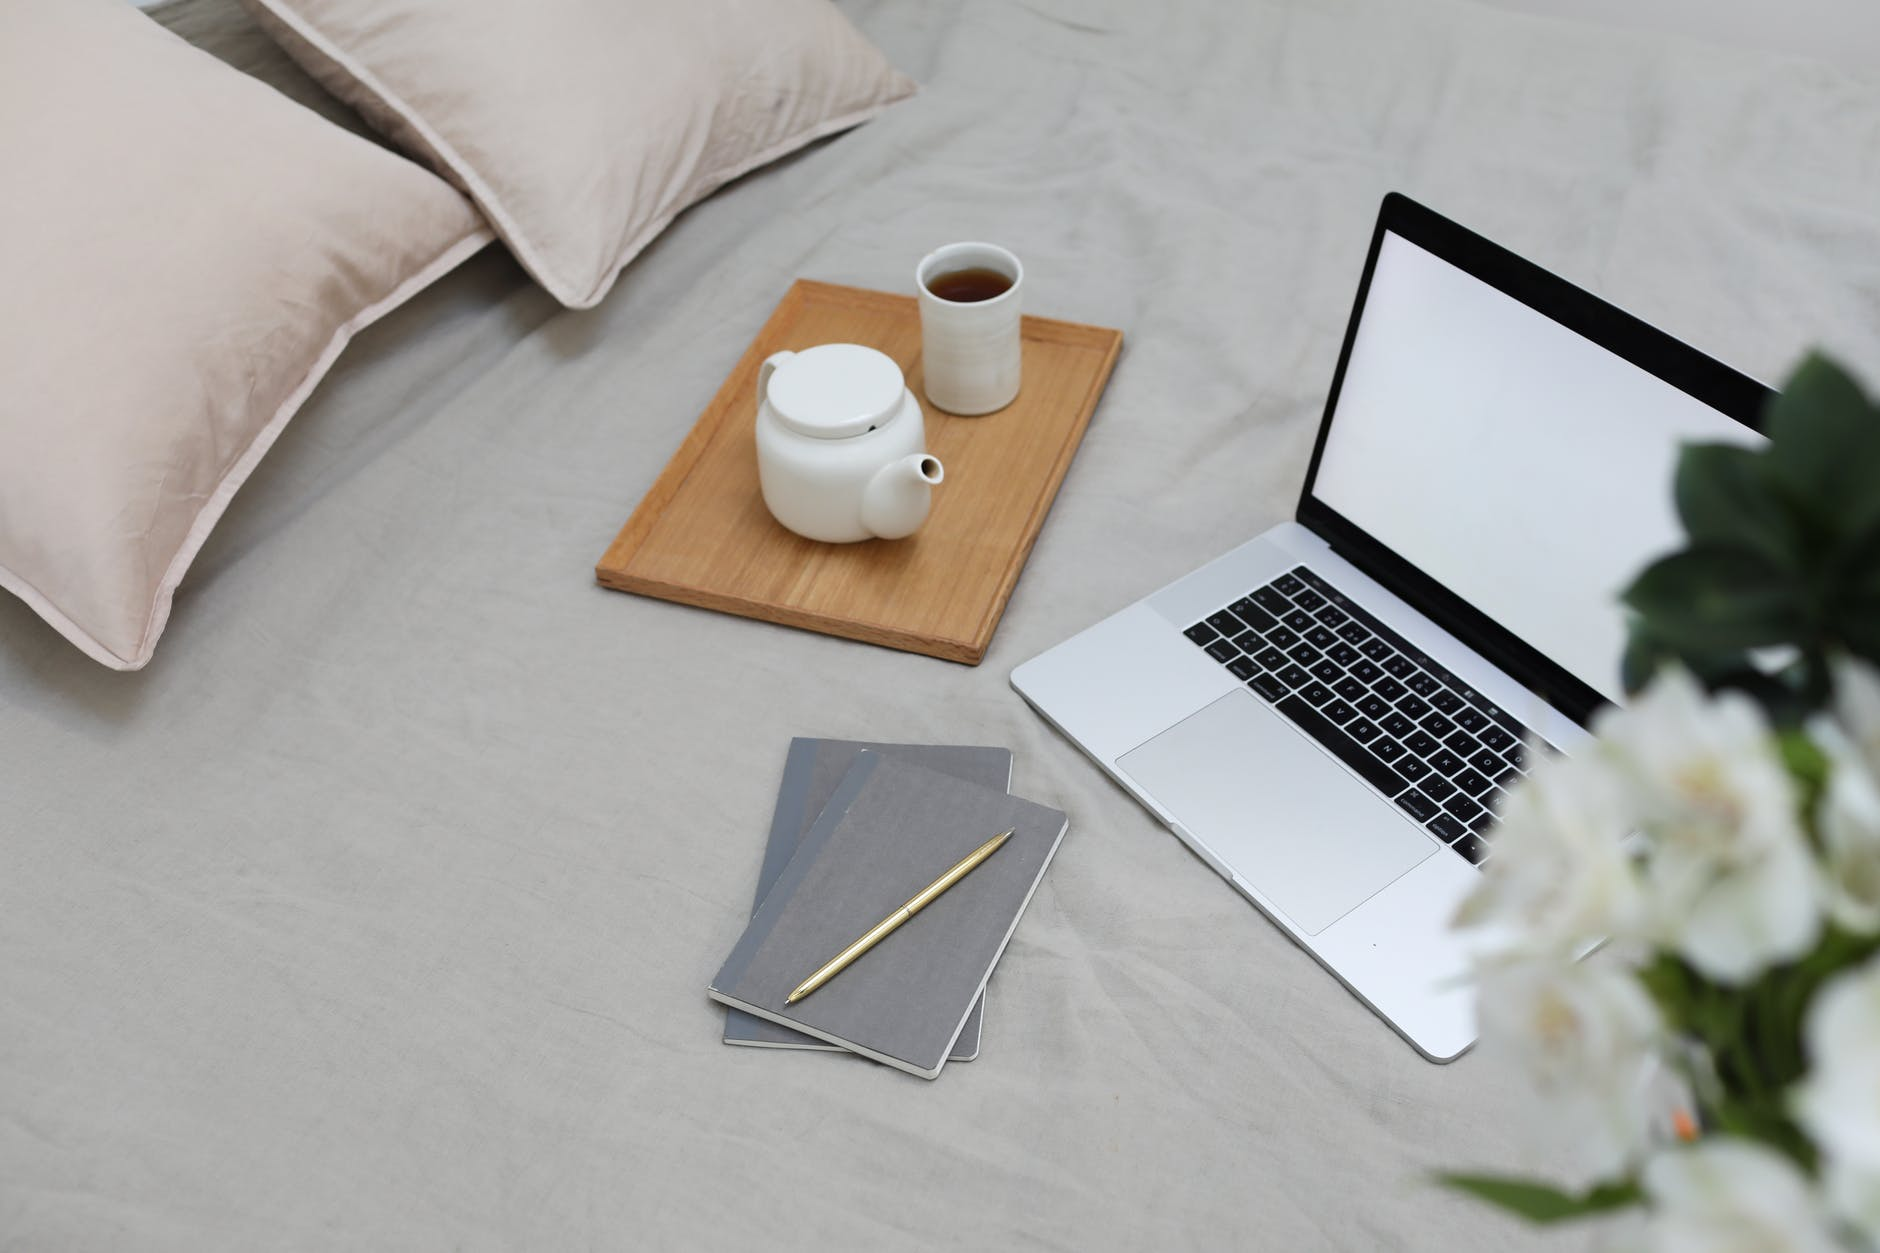 Open laptop and cup on tea on a bedspread, along with some cushions and notebooks.